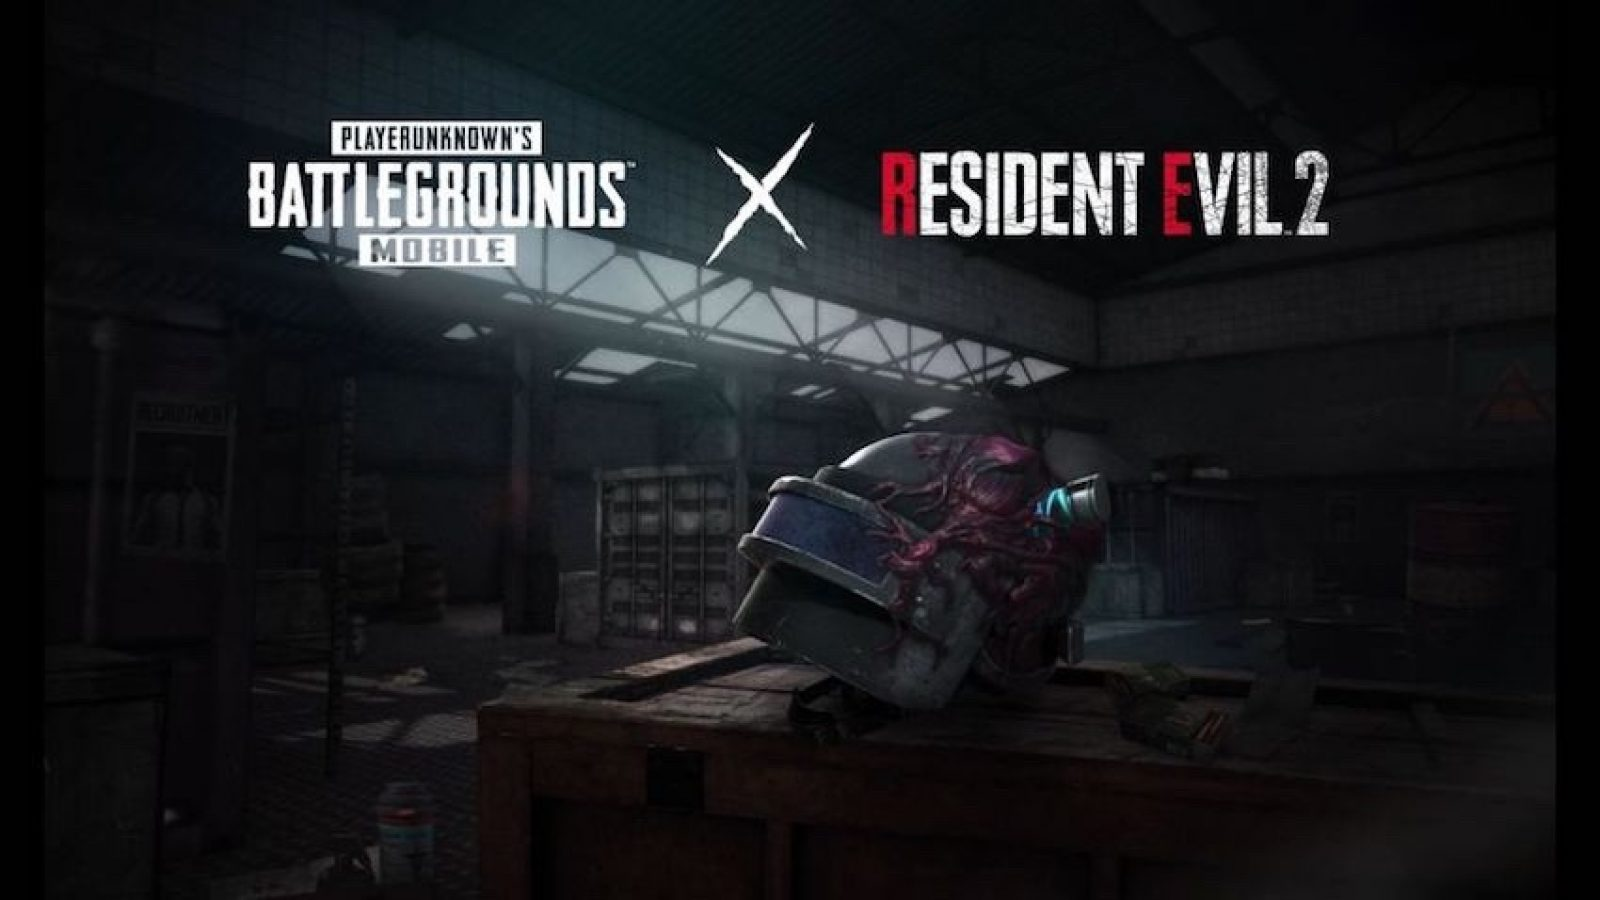 Pubg Mobile X Resident Evil 2 Crossover Is Now Live